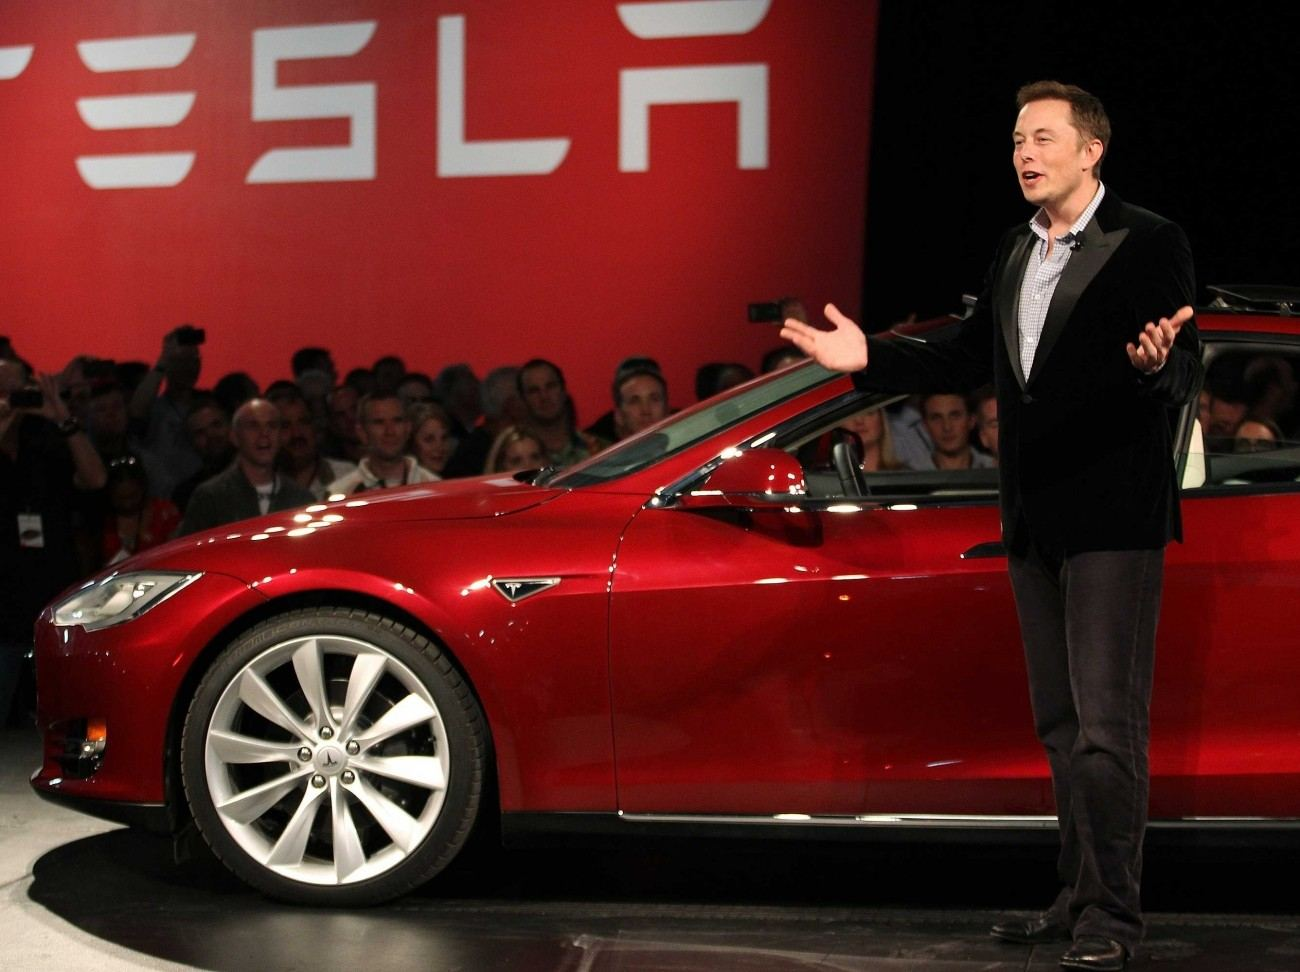 38213_01_elon_musk_plans_to_serve_as_tesla_ceo_for_another_4_5_years_he_says_full